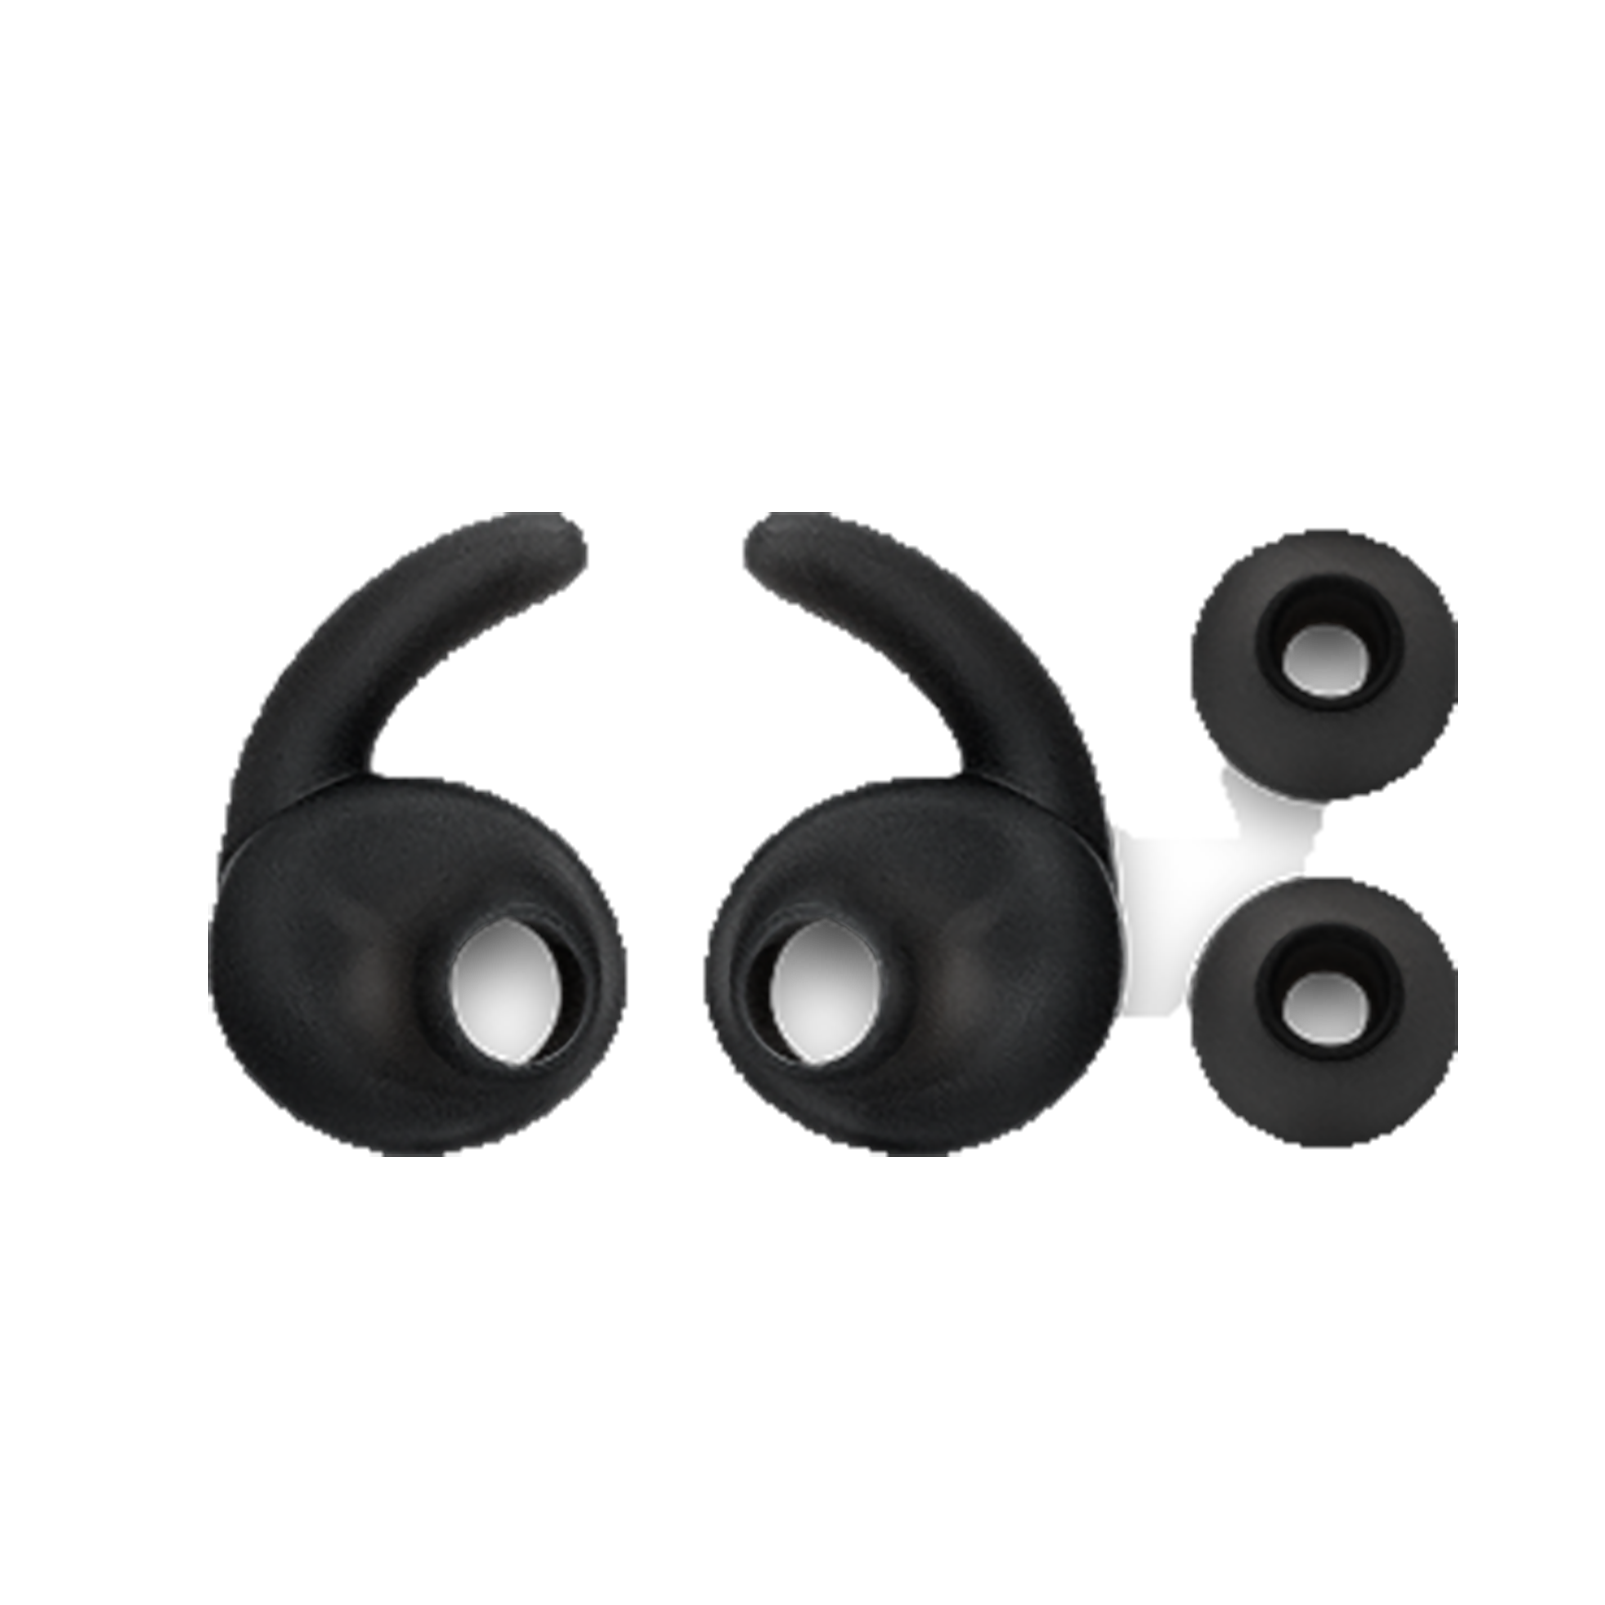 JBL Ear tips and Enhancer for Reflect Mini 2/ Reflect Contour 2 - Black - Ear tips L (L+R) - Hero